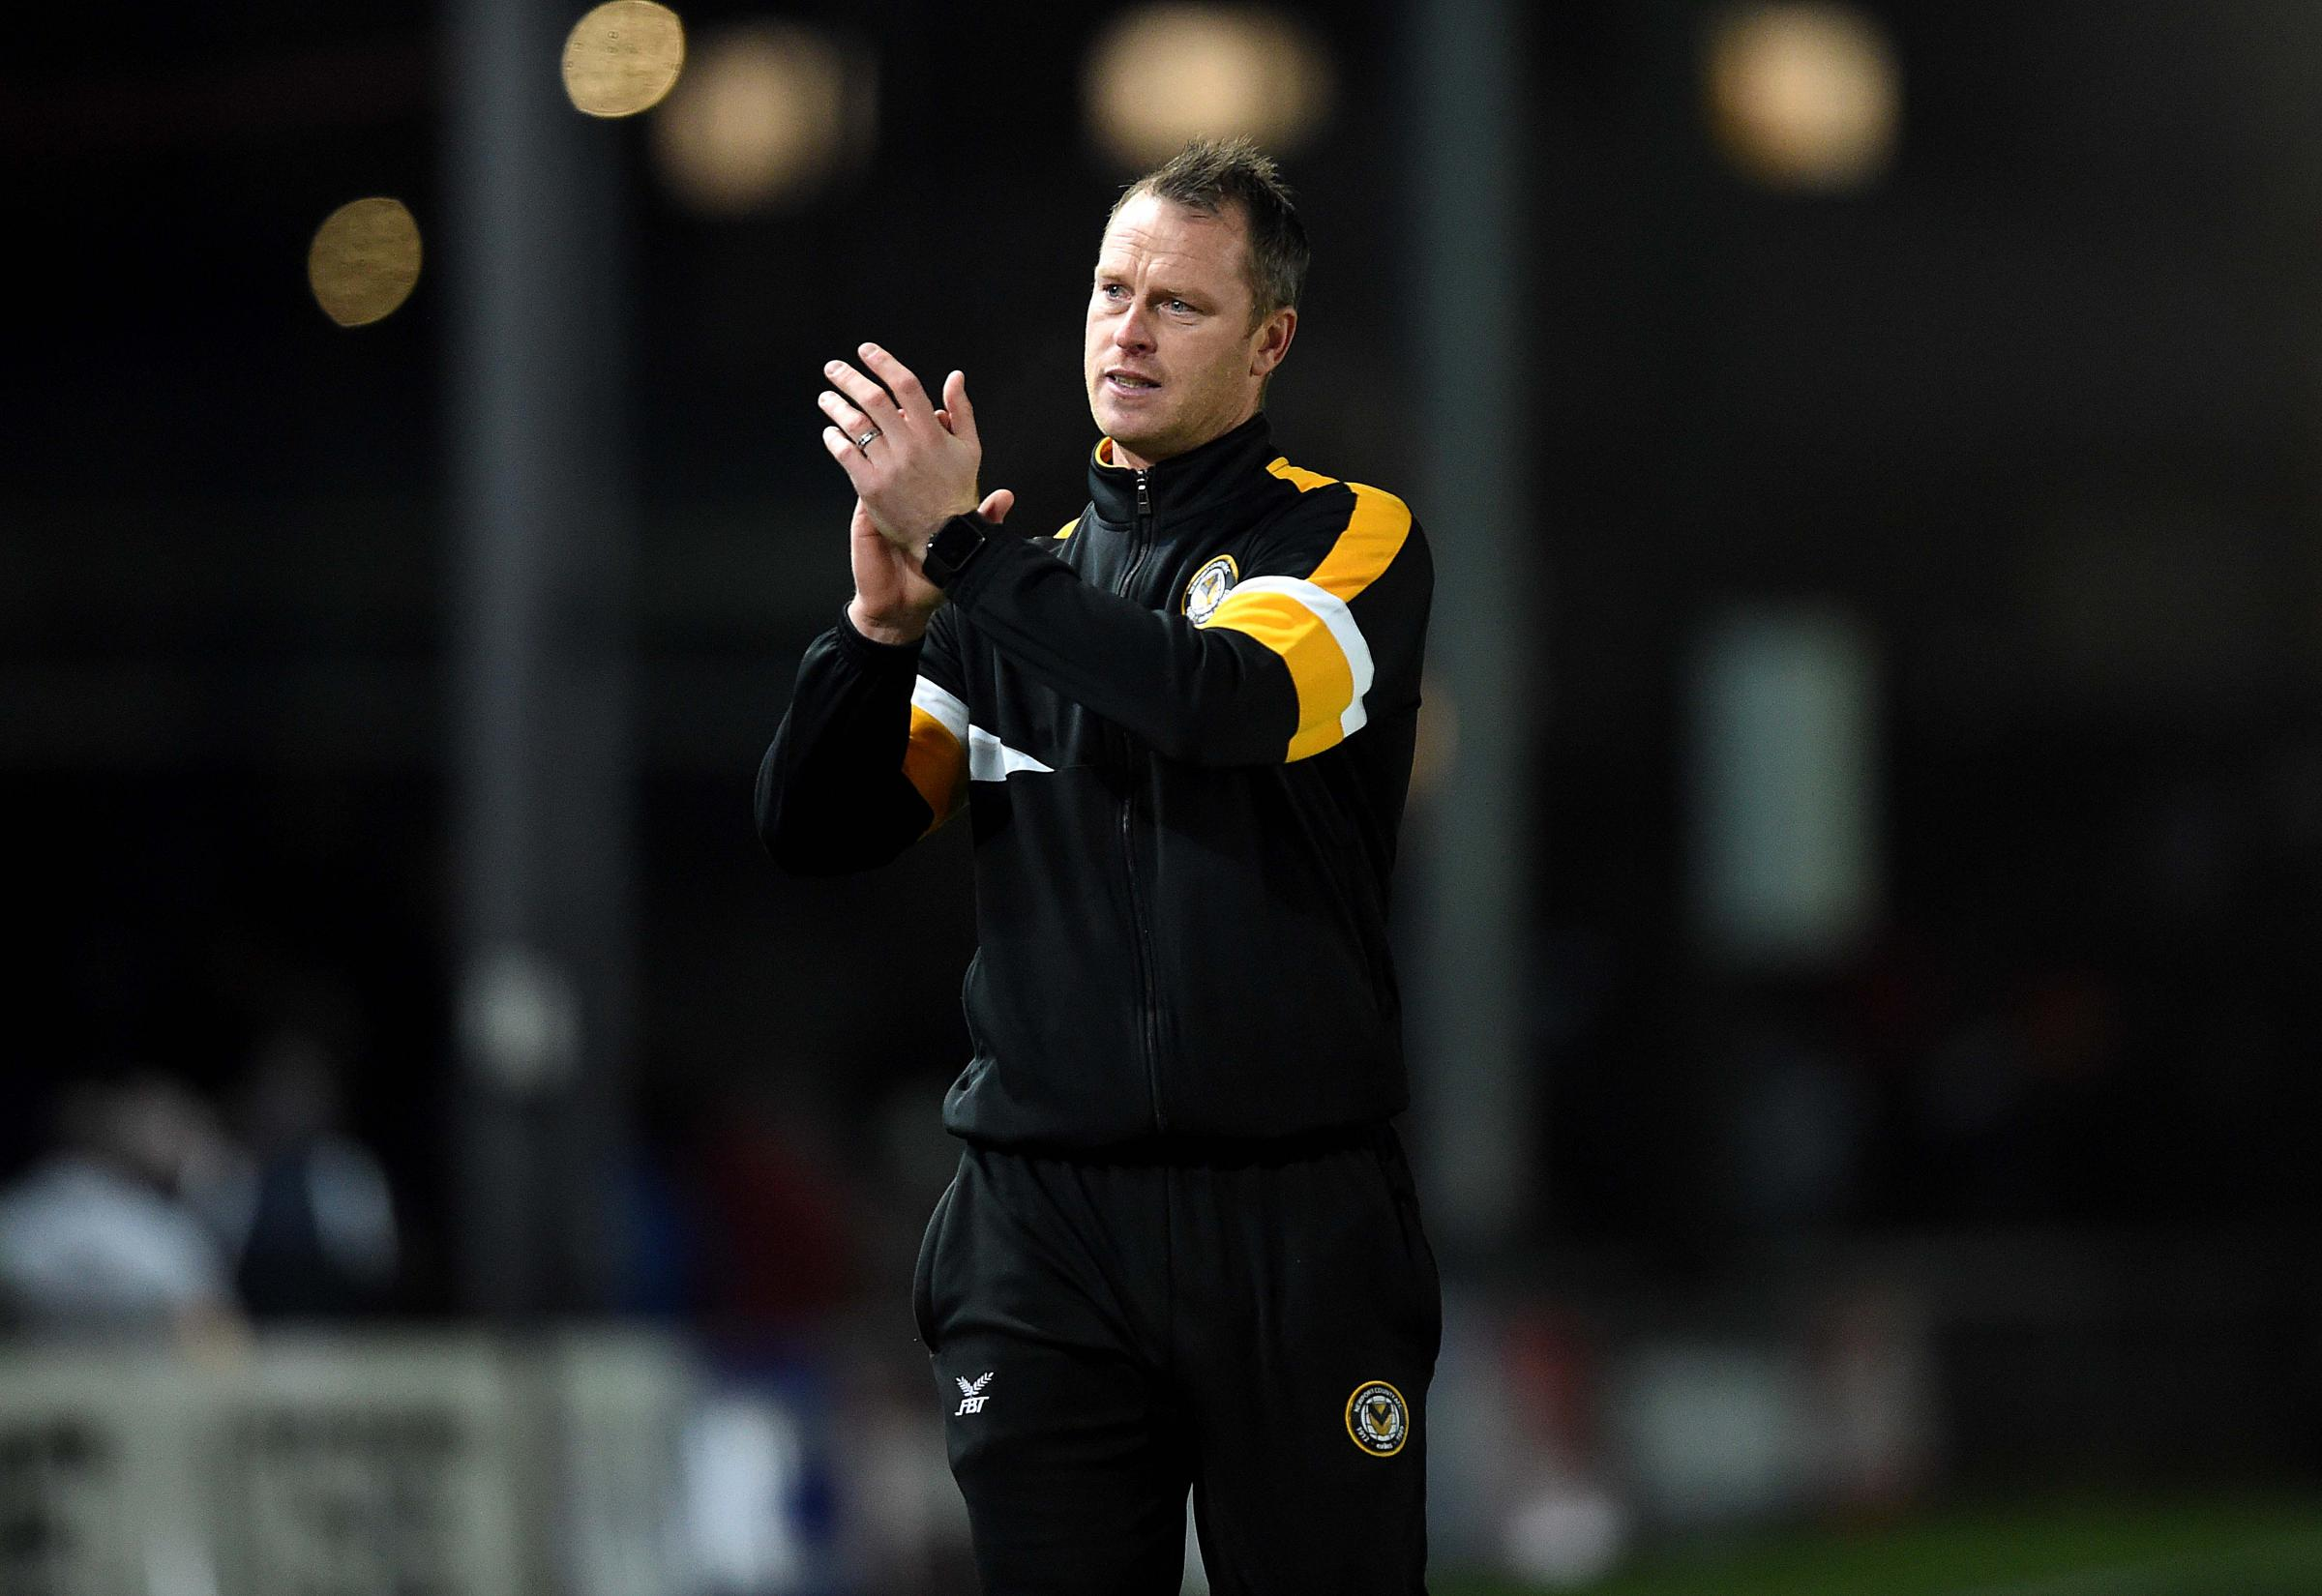 FOCUSED: Newport County boss Michael Flynn after the win over Northampton Town at Rodney Parade